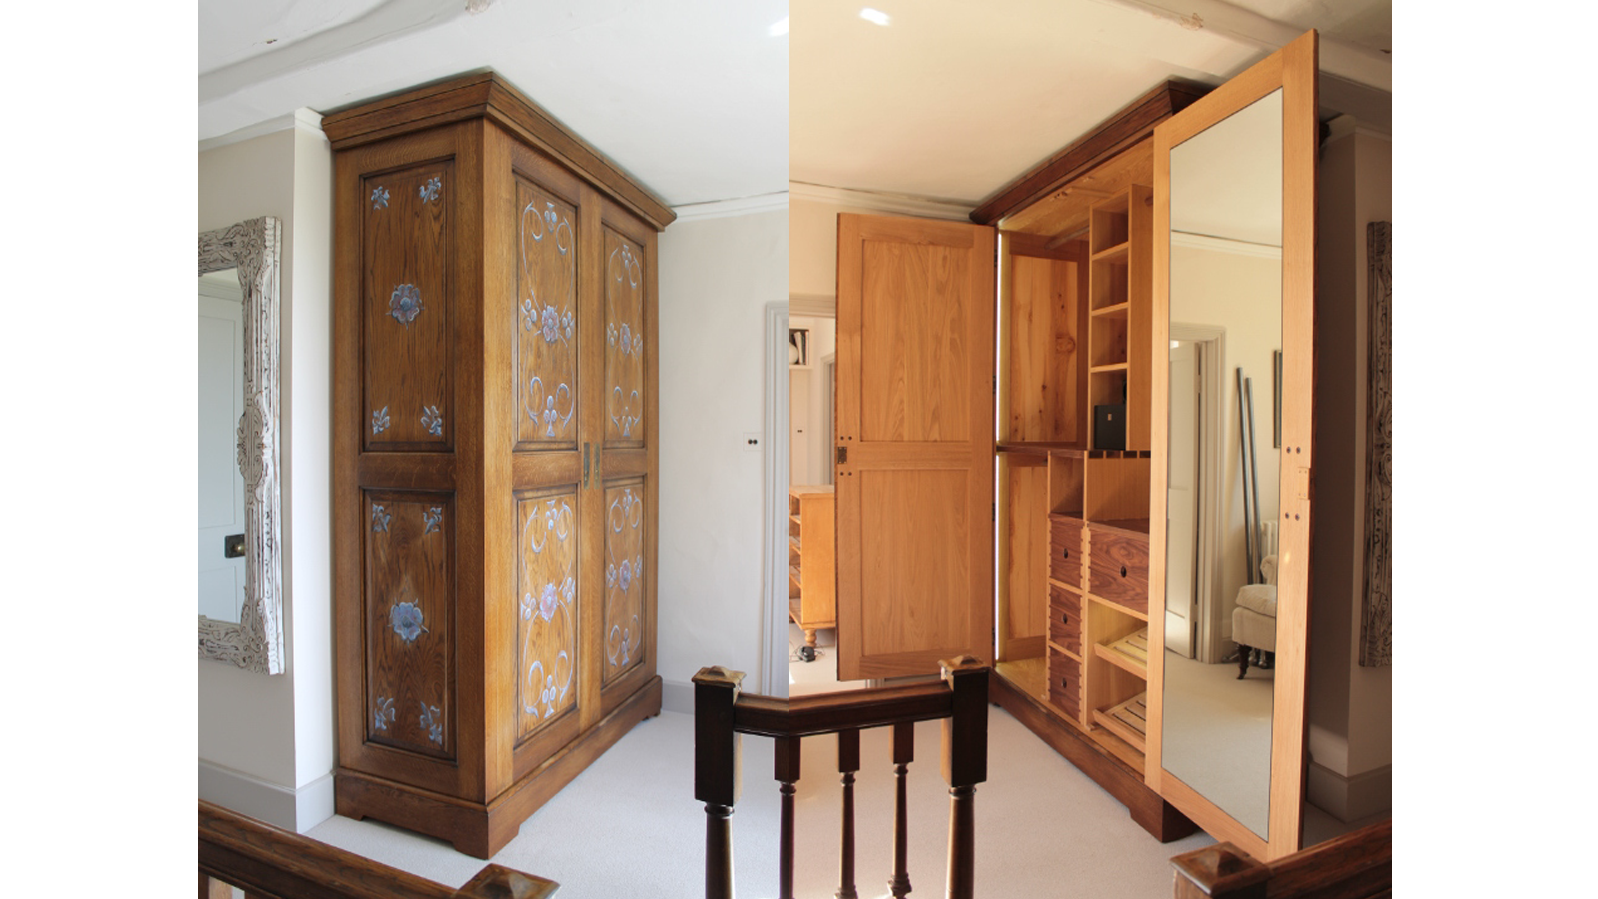 Bespoke Armoire - Traditional Raised Panels Constuction, Stained and Aged Oak with Modern Interior